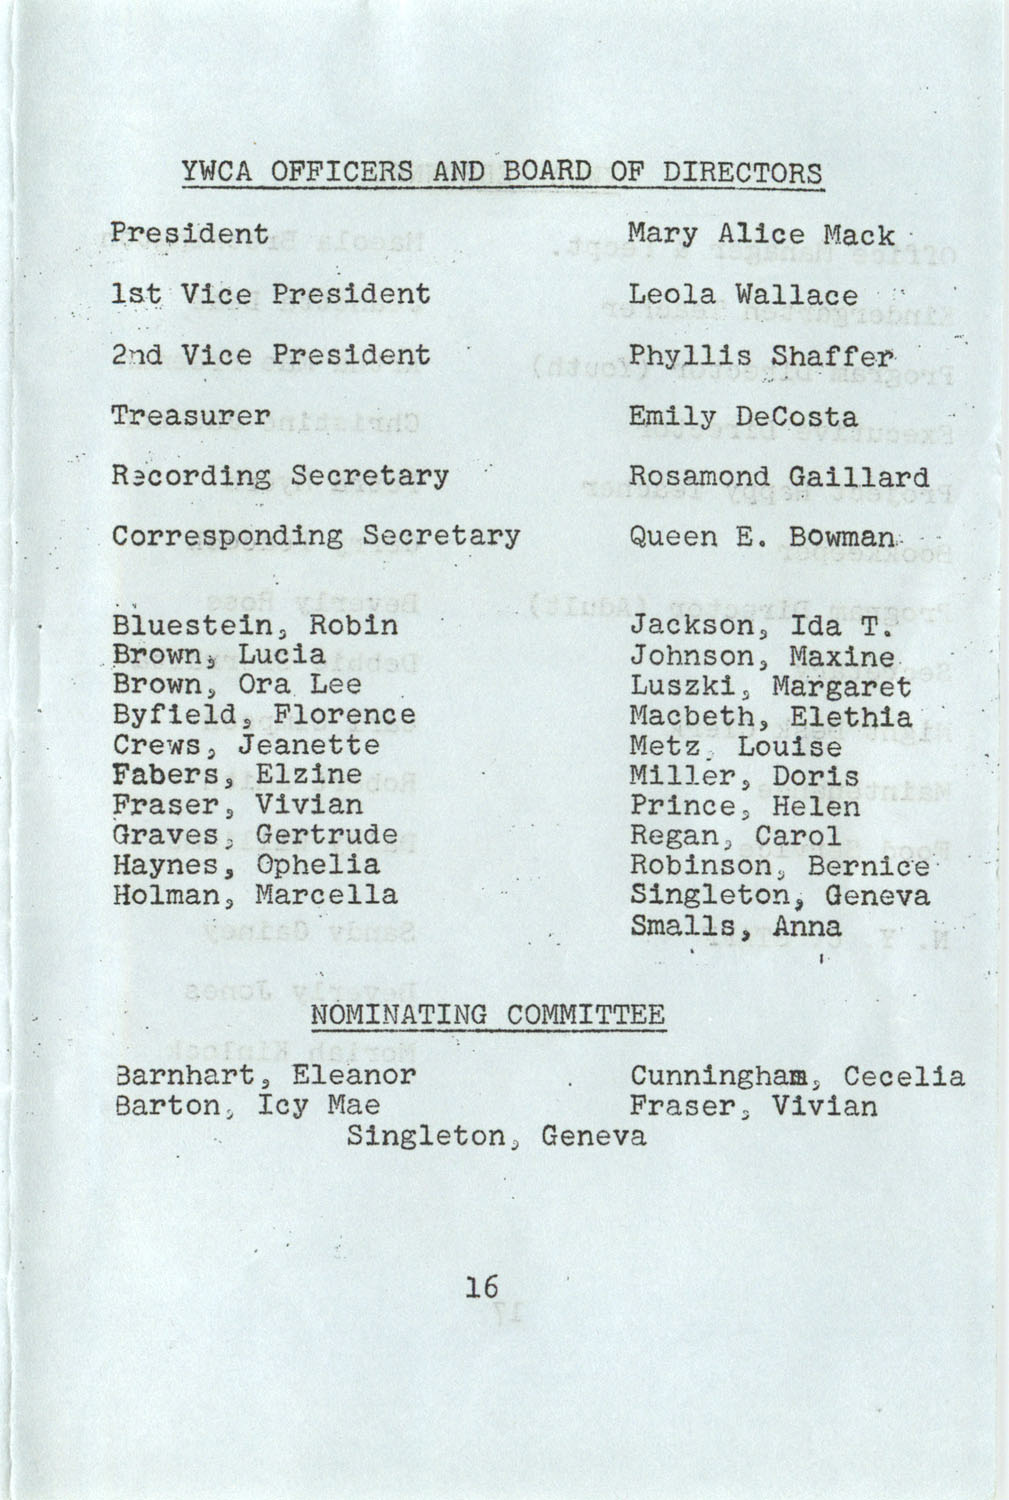 YWCA Spring 1975 Schedule, Page 16